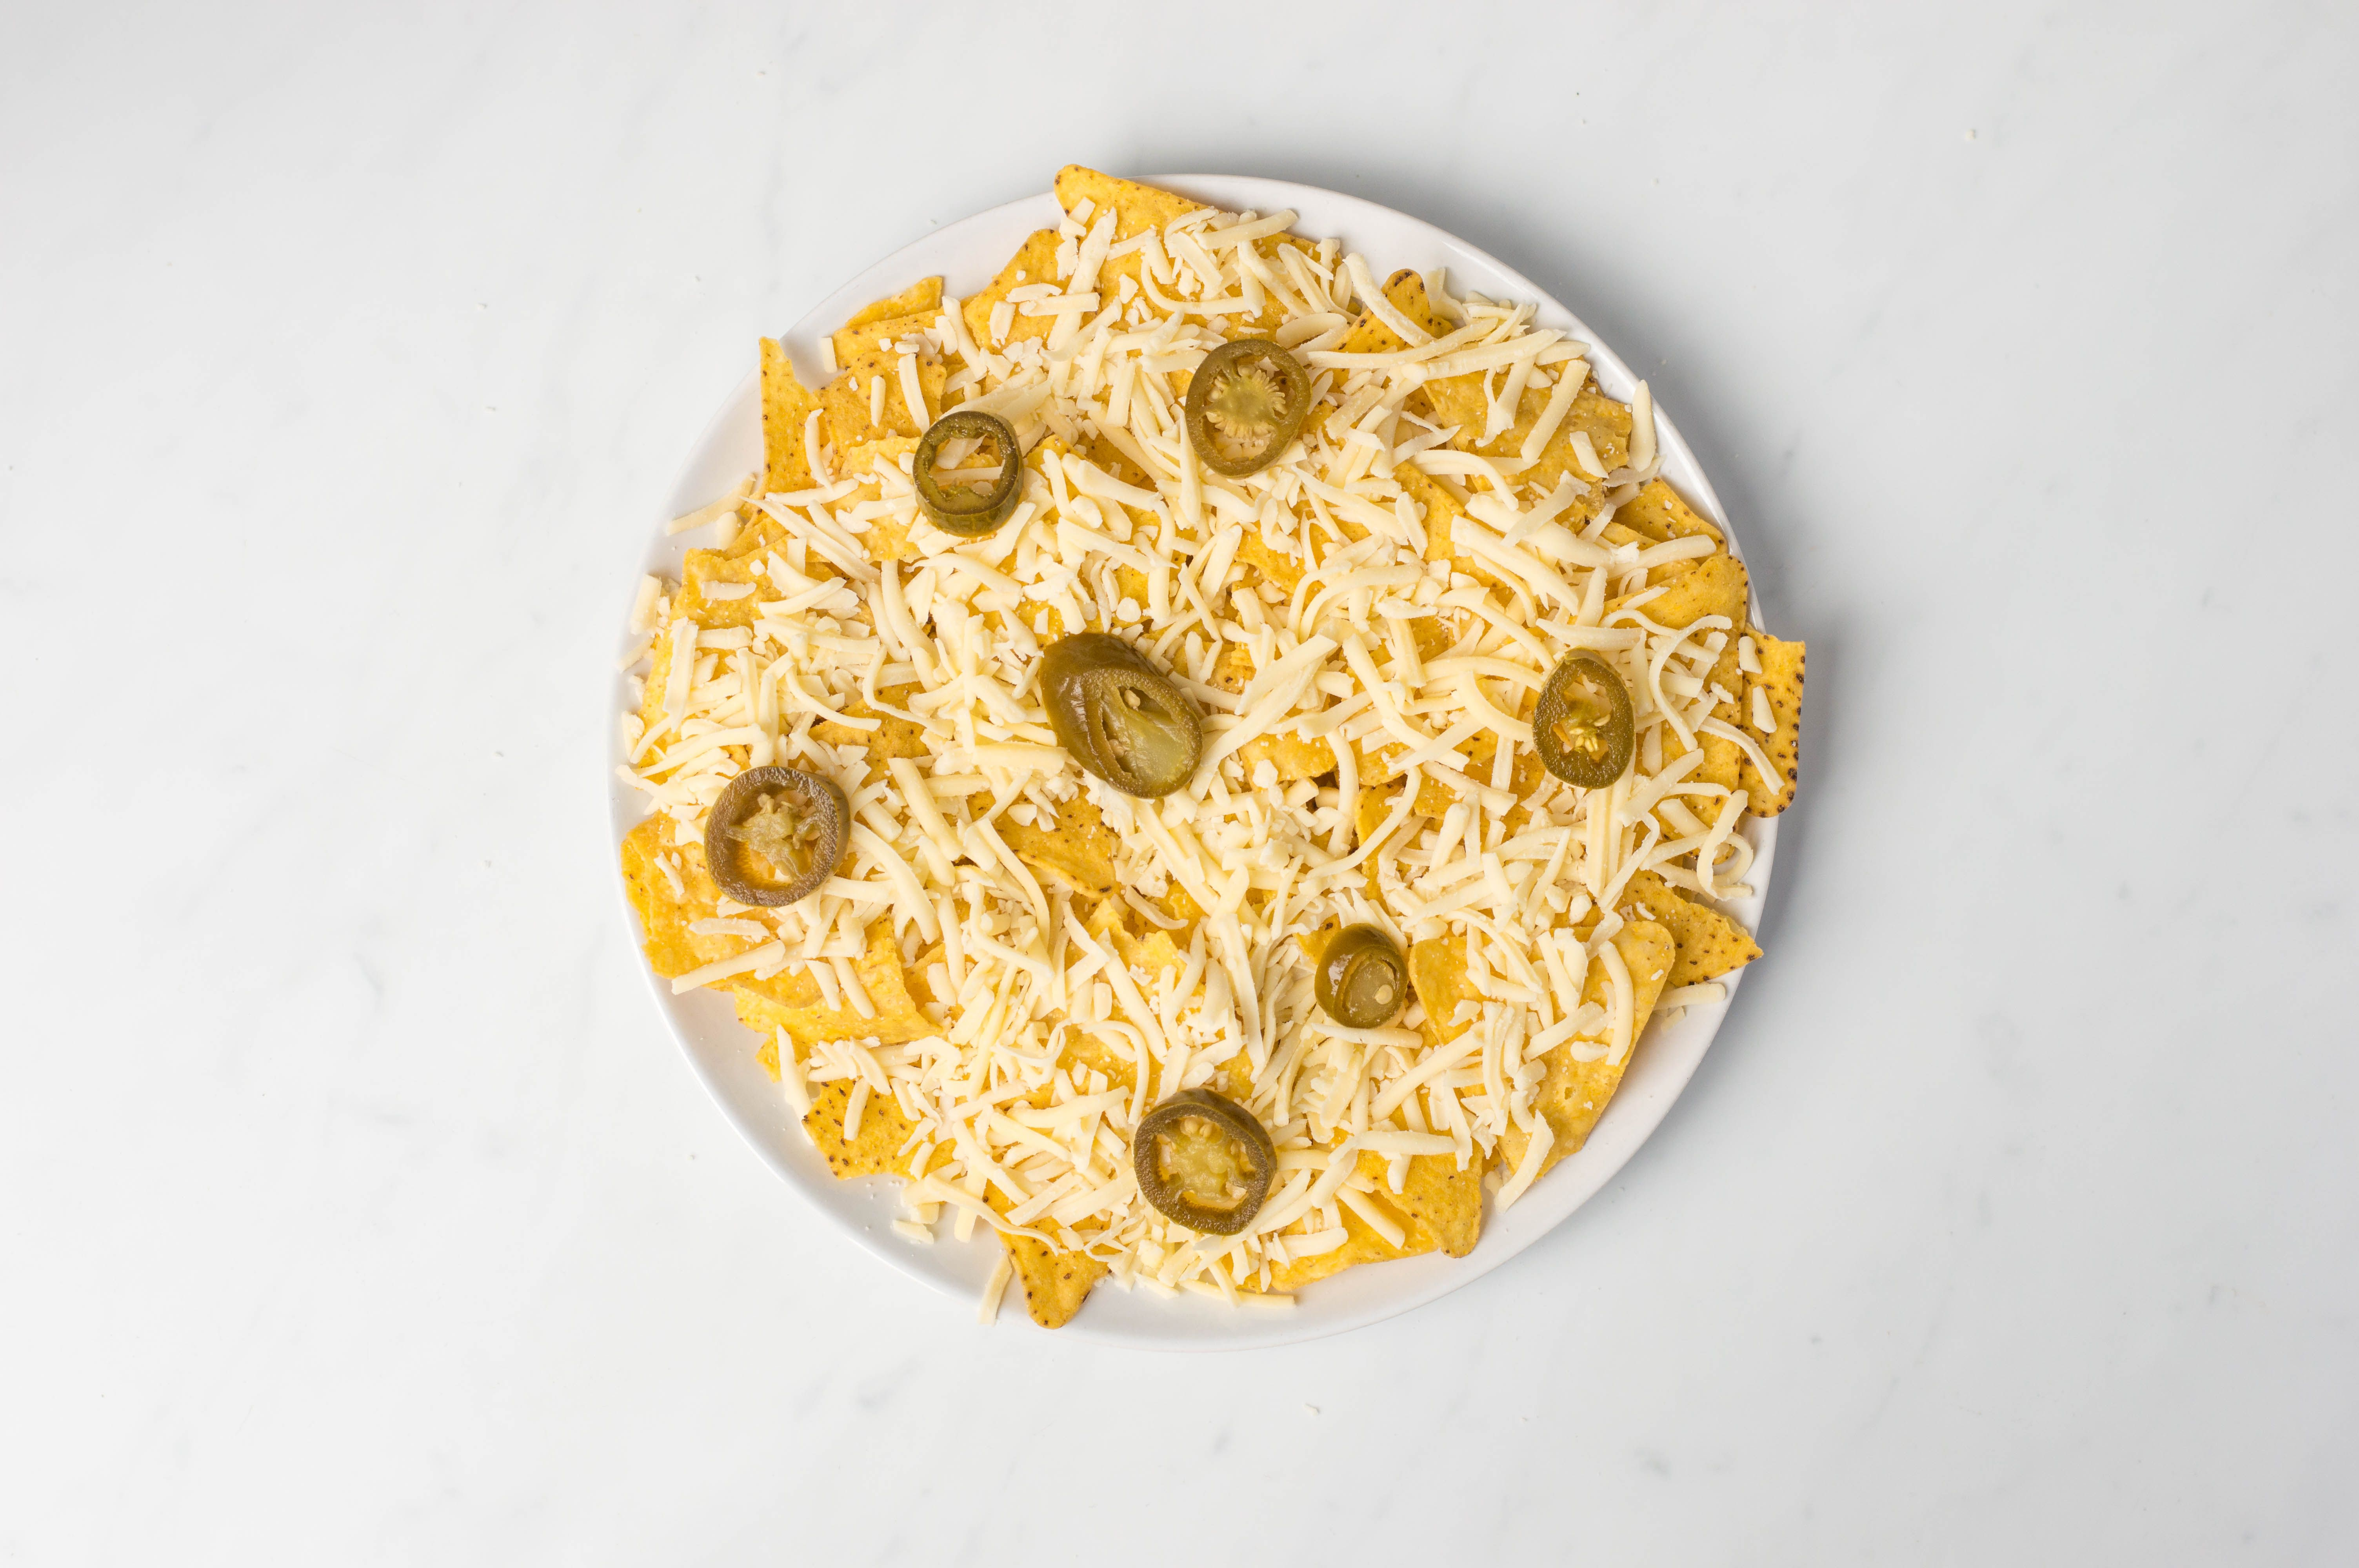 Top with jalapeño slices